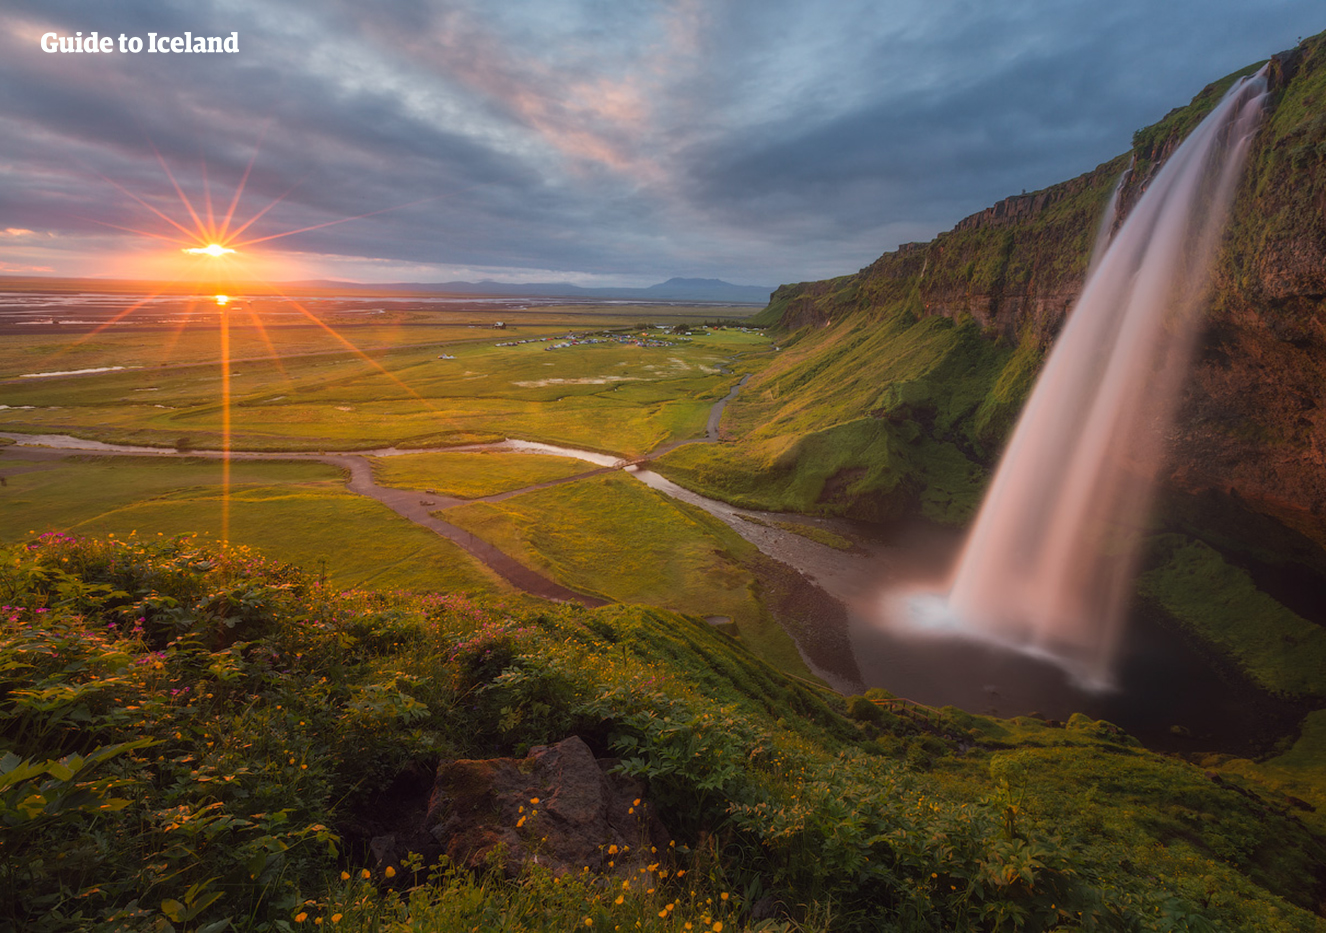 Seljalandsfoss is just one of the many hundreds of waterfalls found on Iceland's South Coast.